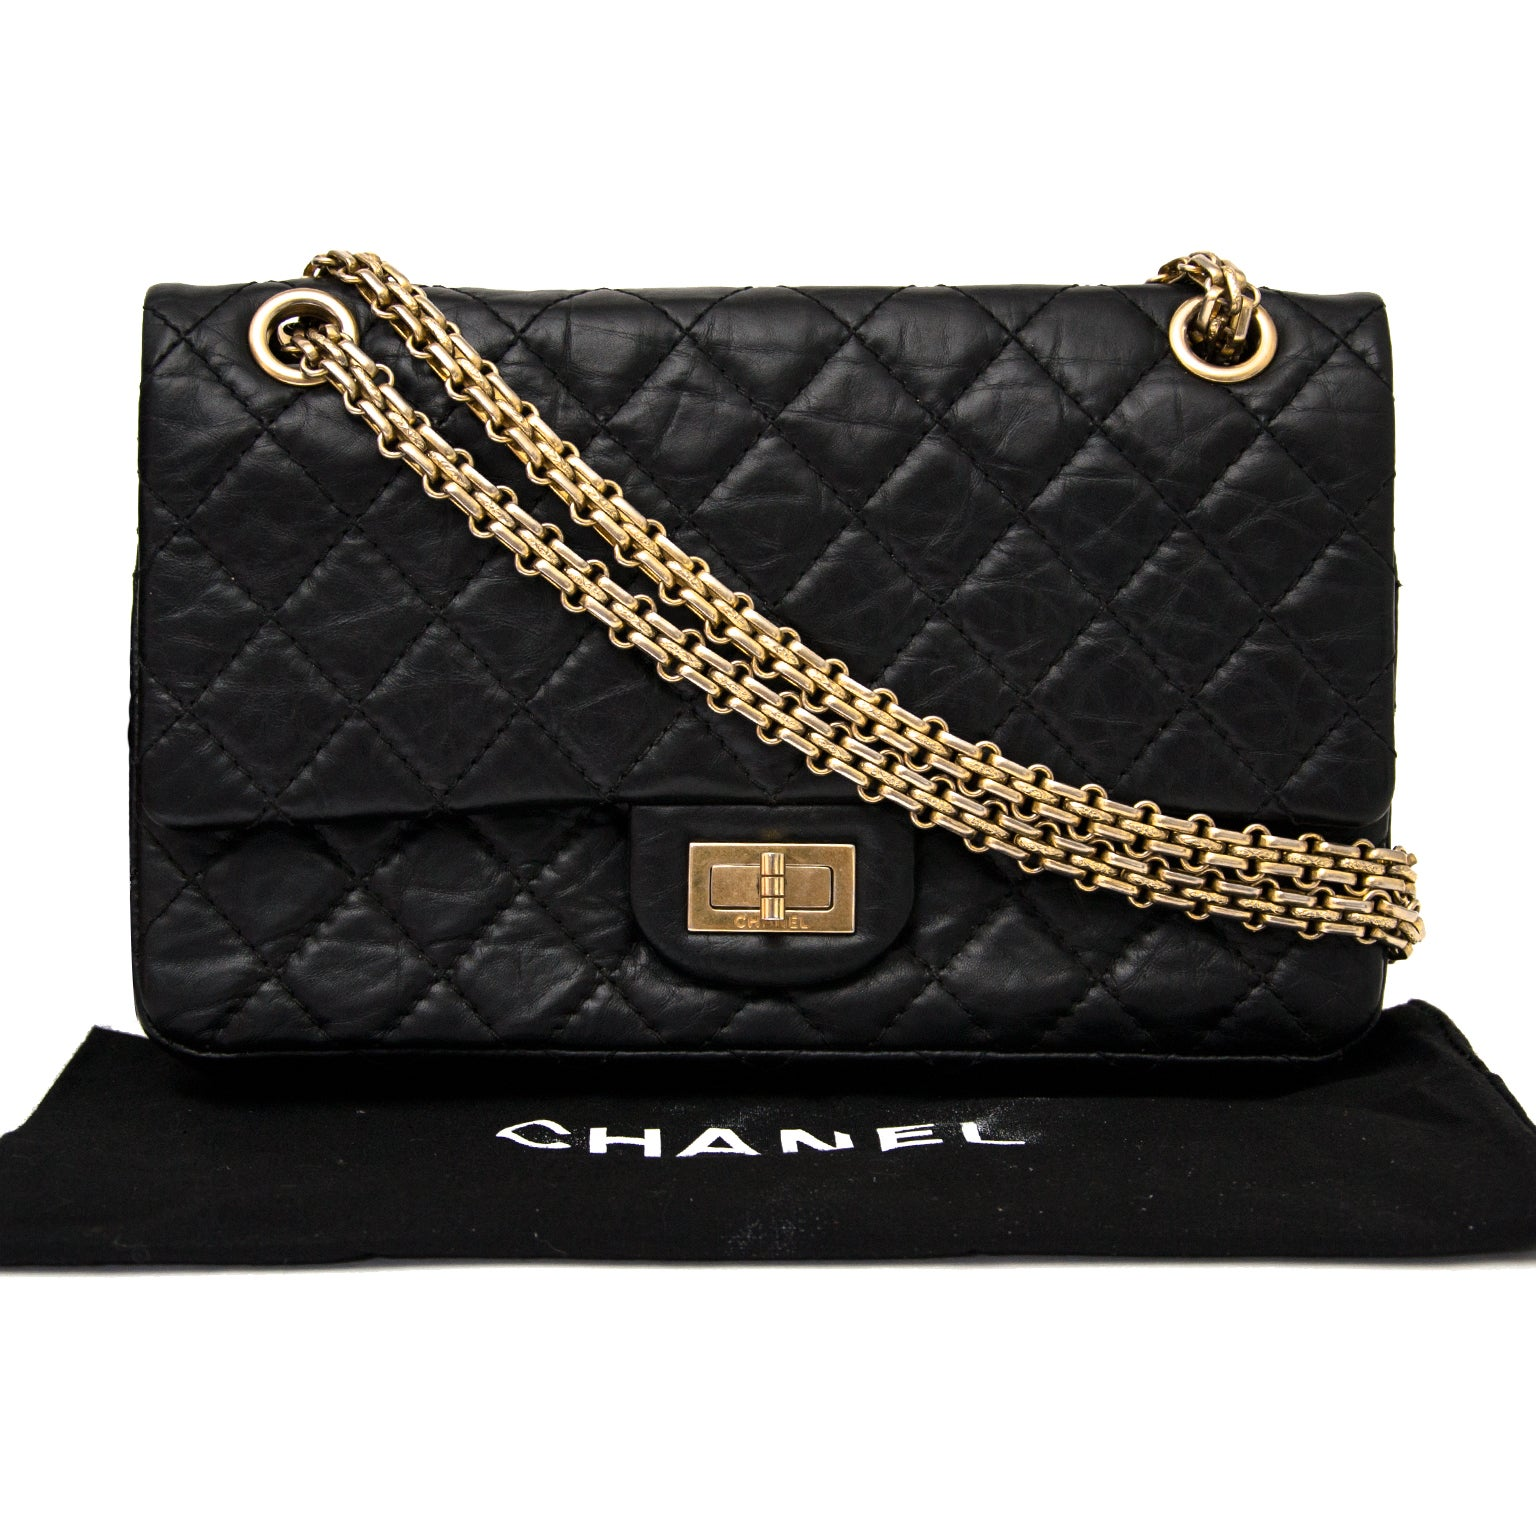 a885ab99105295 Chanel 2.55 Reissue 225 Double Flap Bag in Black at 1stdibs